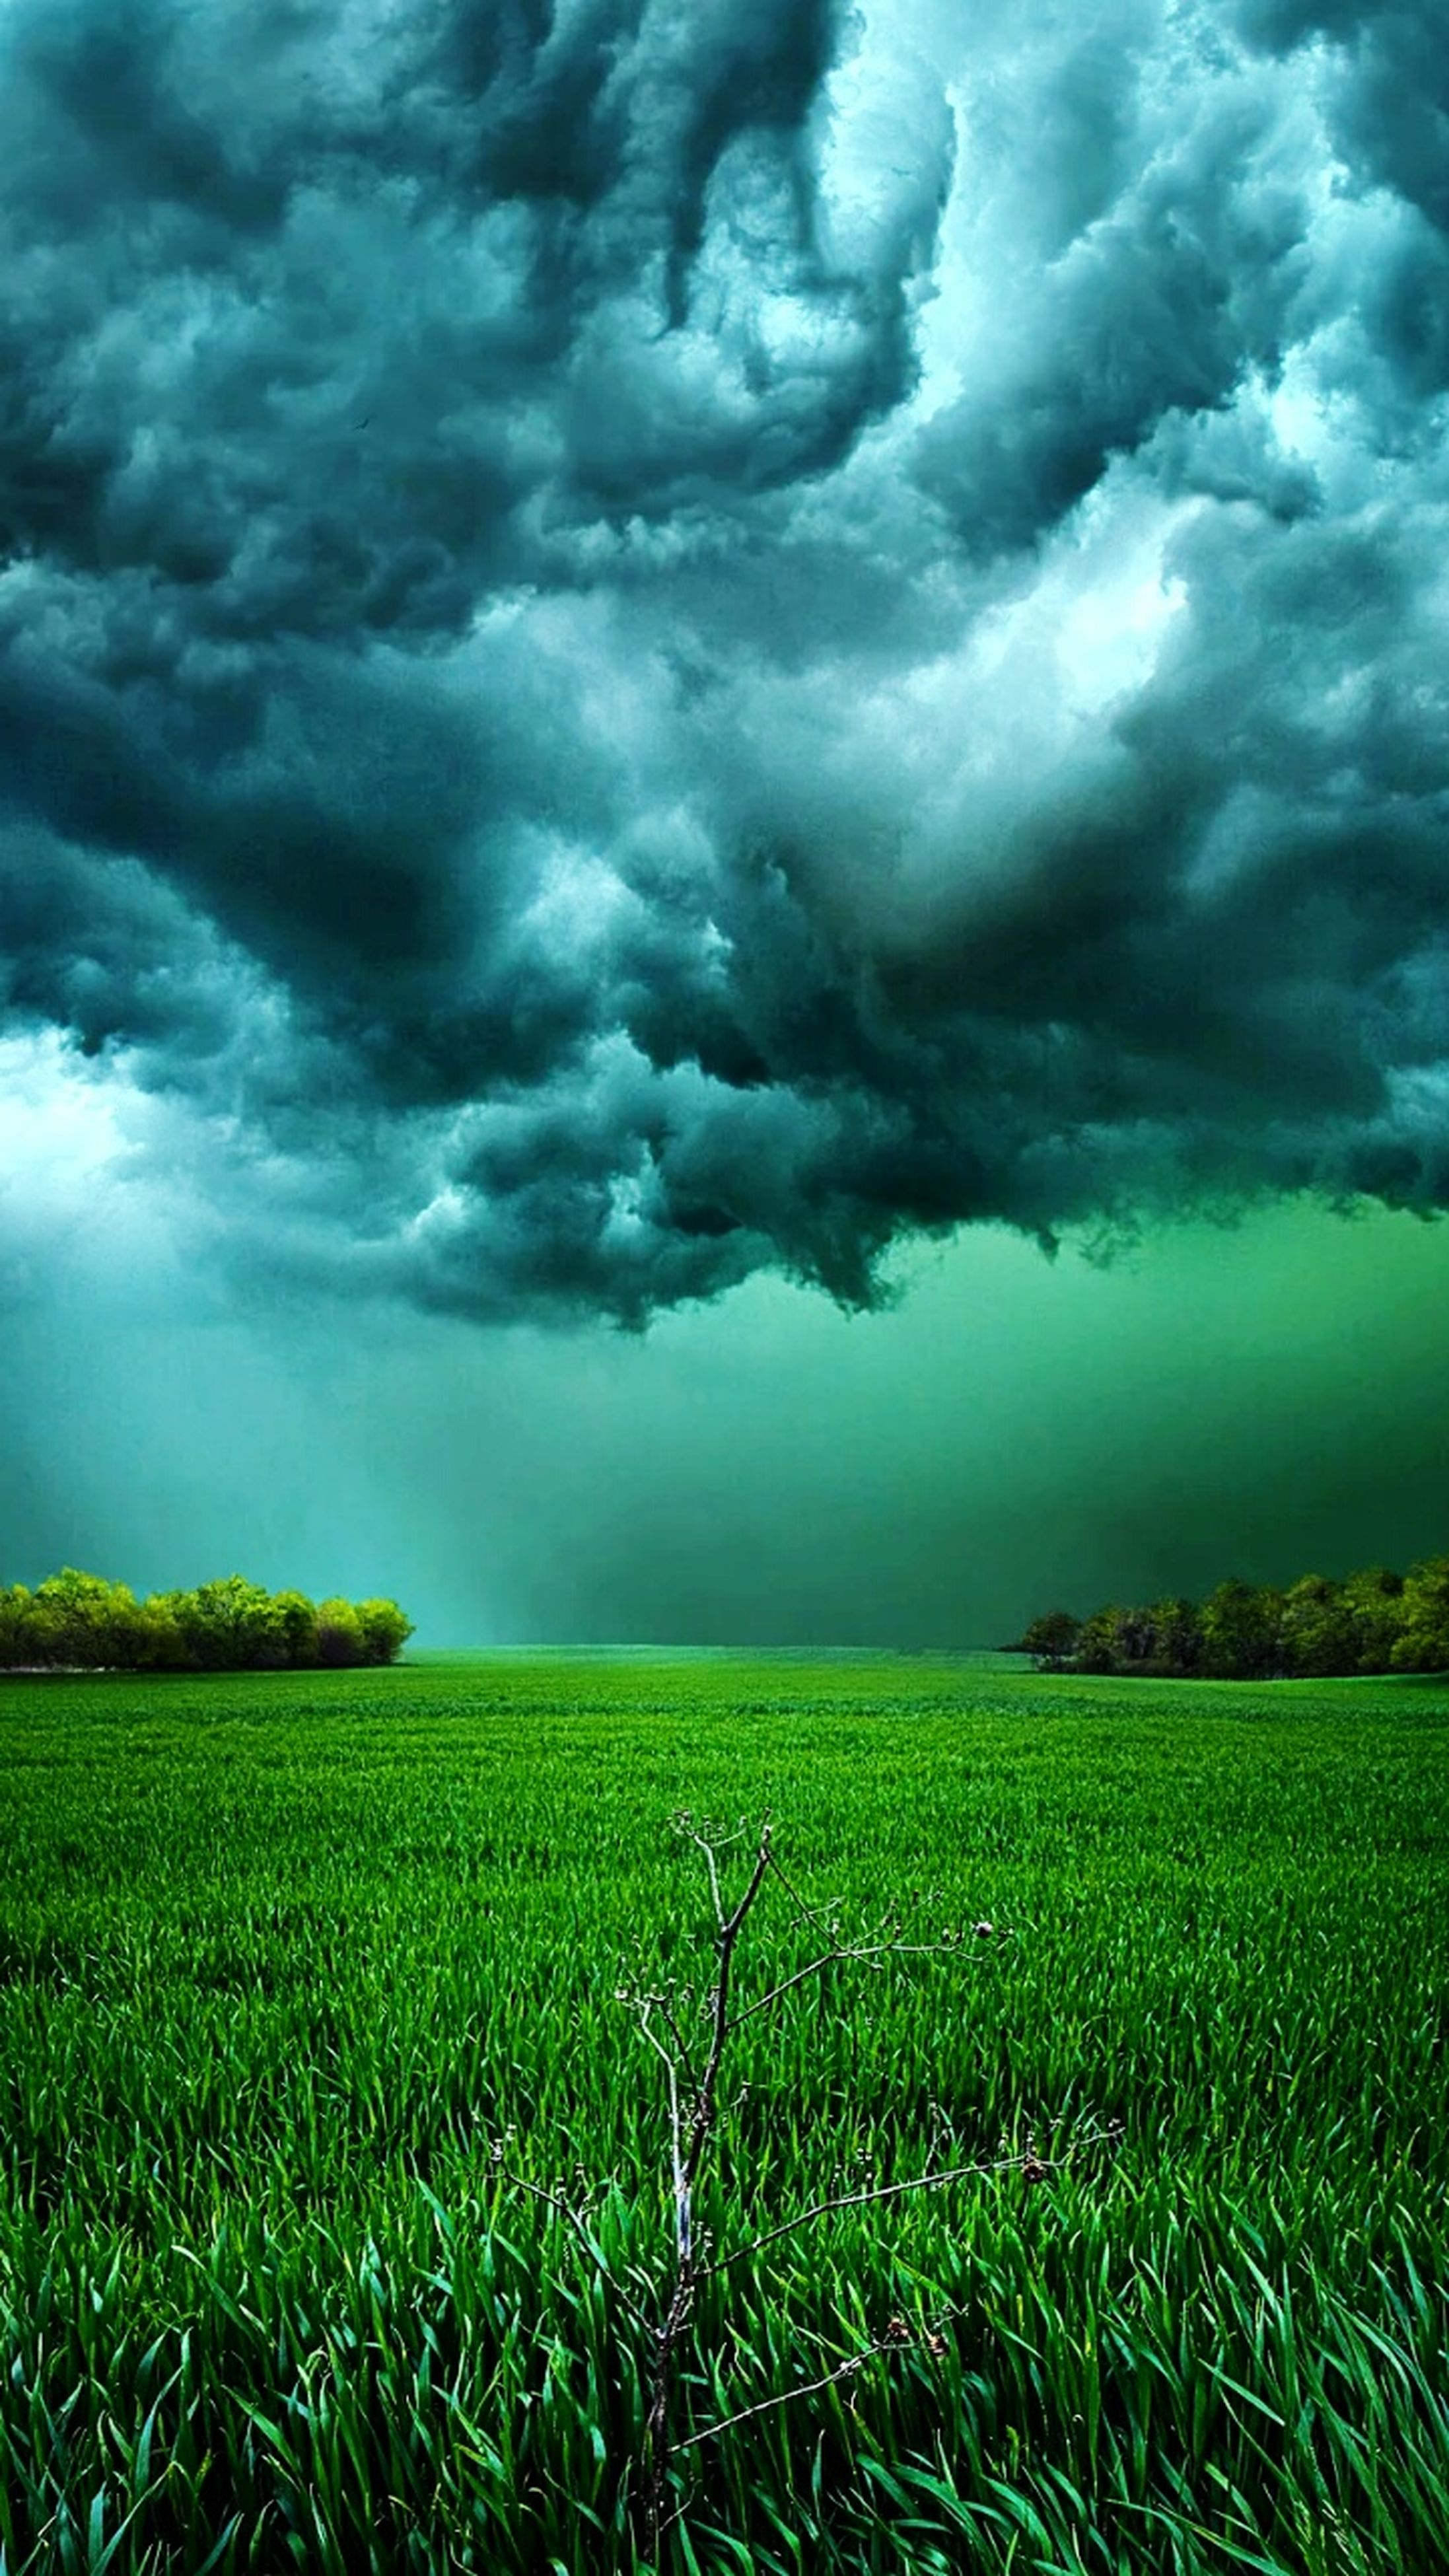 sky, field, landscape, cloud - sky, tranquil scene, cloudy, tranquility, scenics, beauty in nature, rural scene, grass, nature, agriculture, storm cloud, weather, green color, overcast, cloud, growth, farm